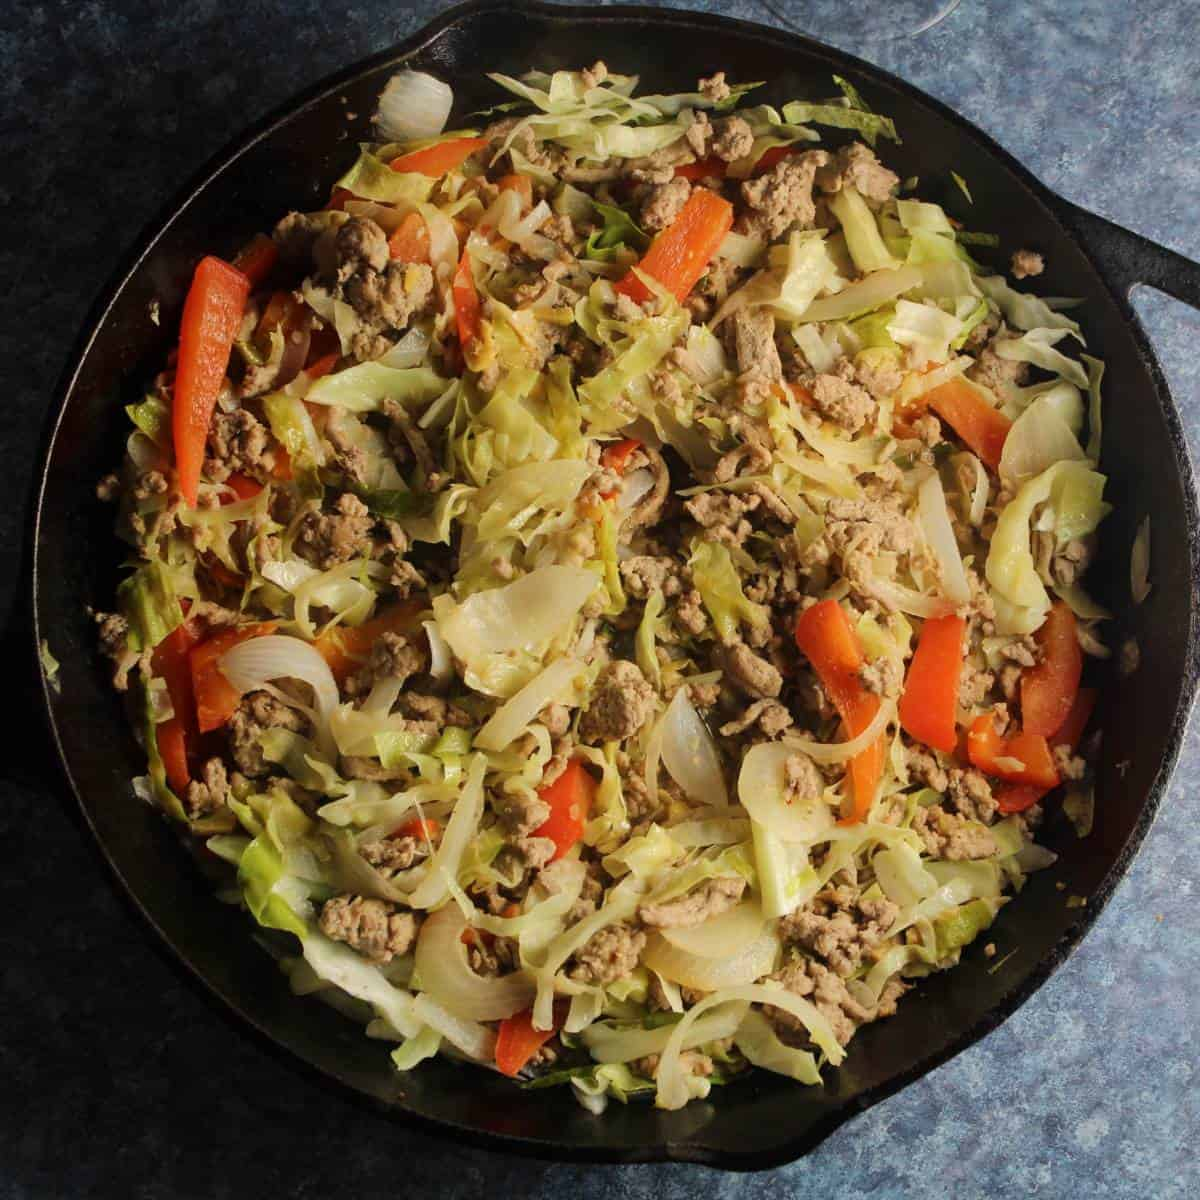 turkey and cabbage stir-fry in a skillet.